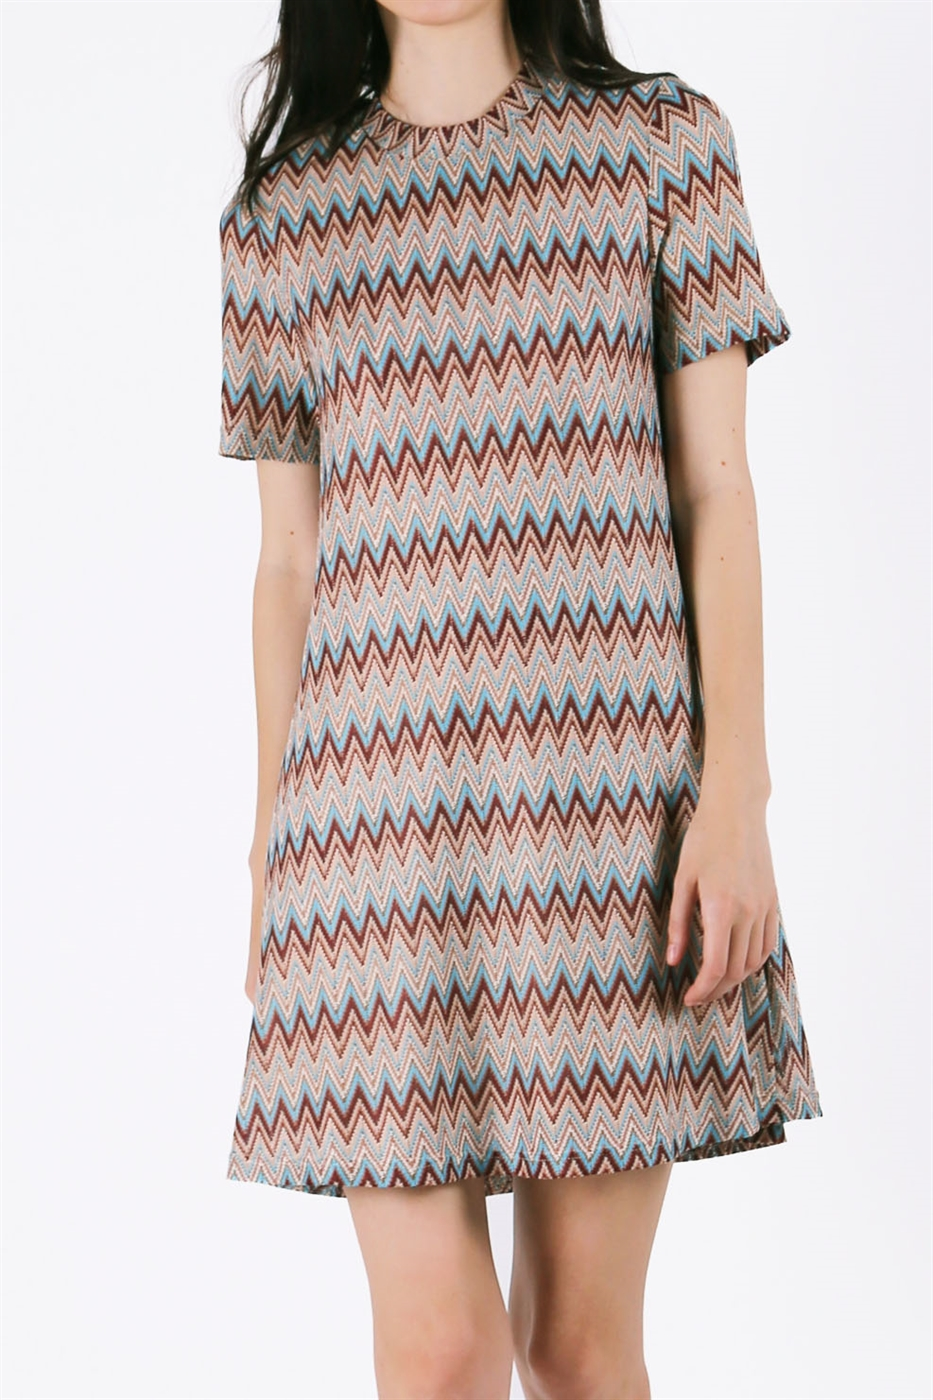 CHEVRON SHOR SLEEVE DRESS - orangeshine.com